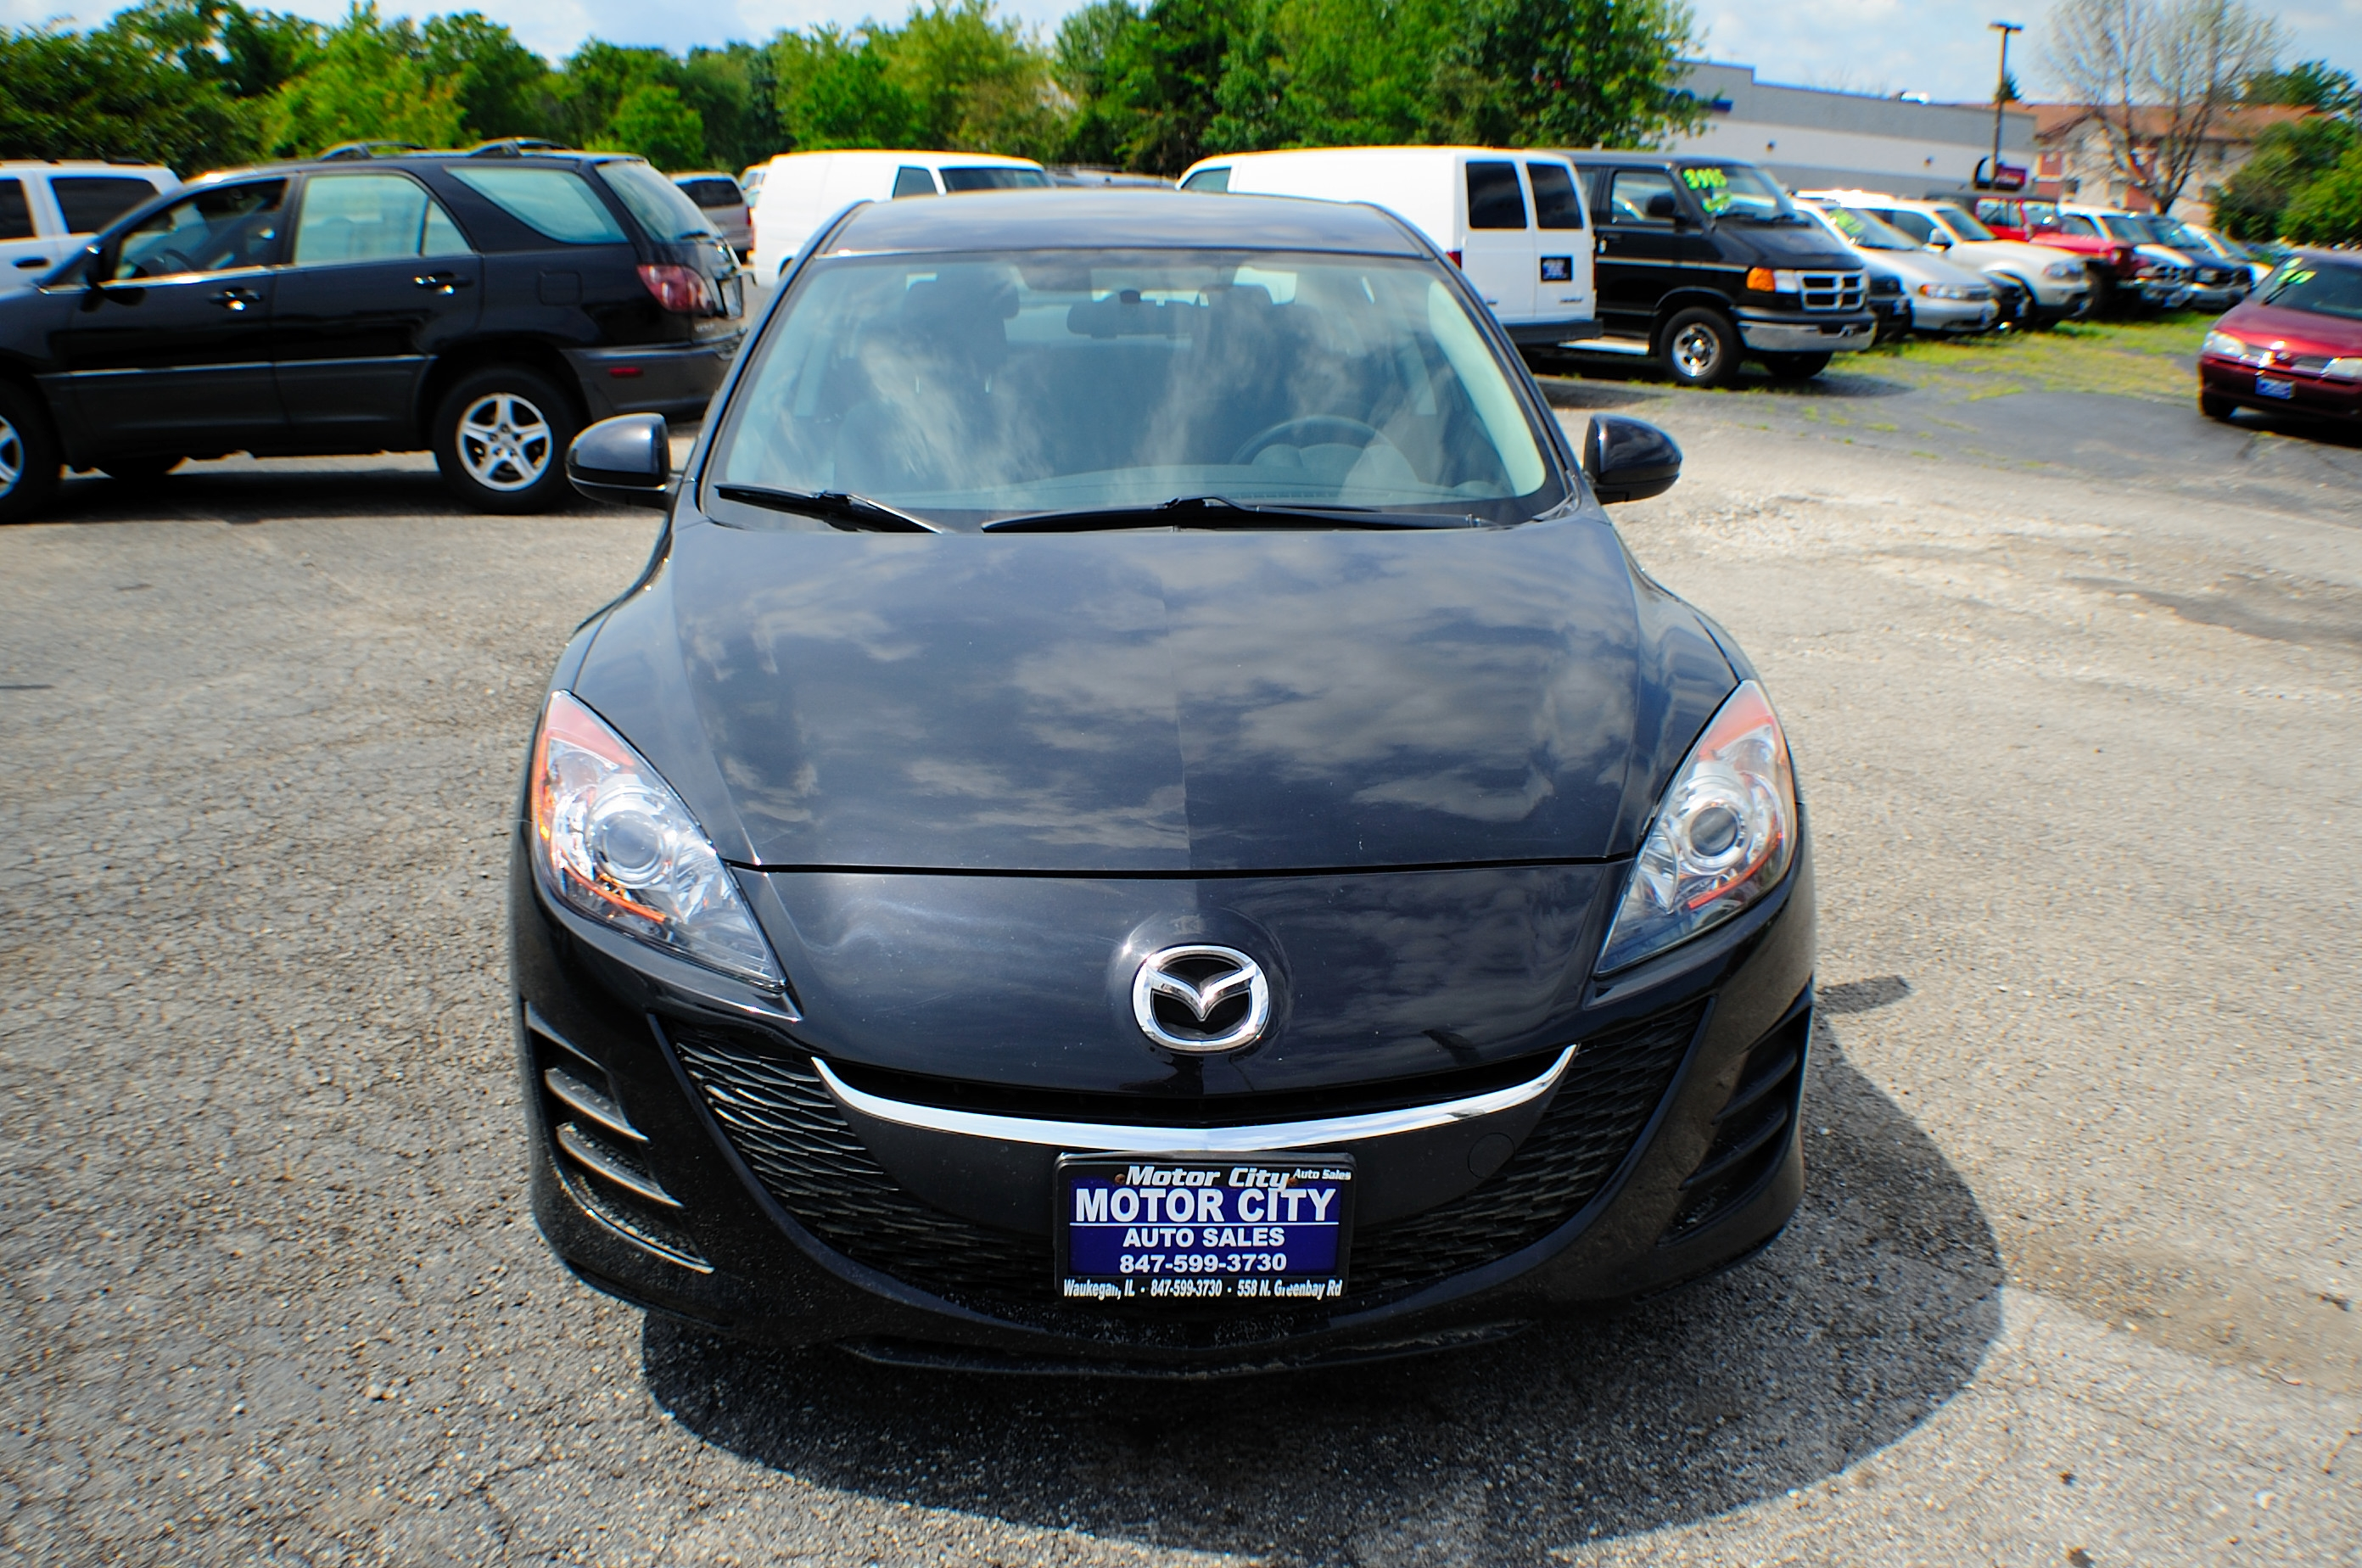 2010 Mazda 3i Black Sport Sedan used car Sale Libertyville Beach Park